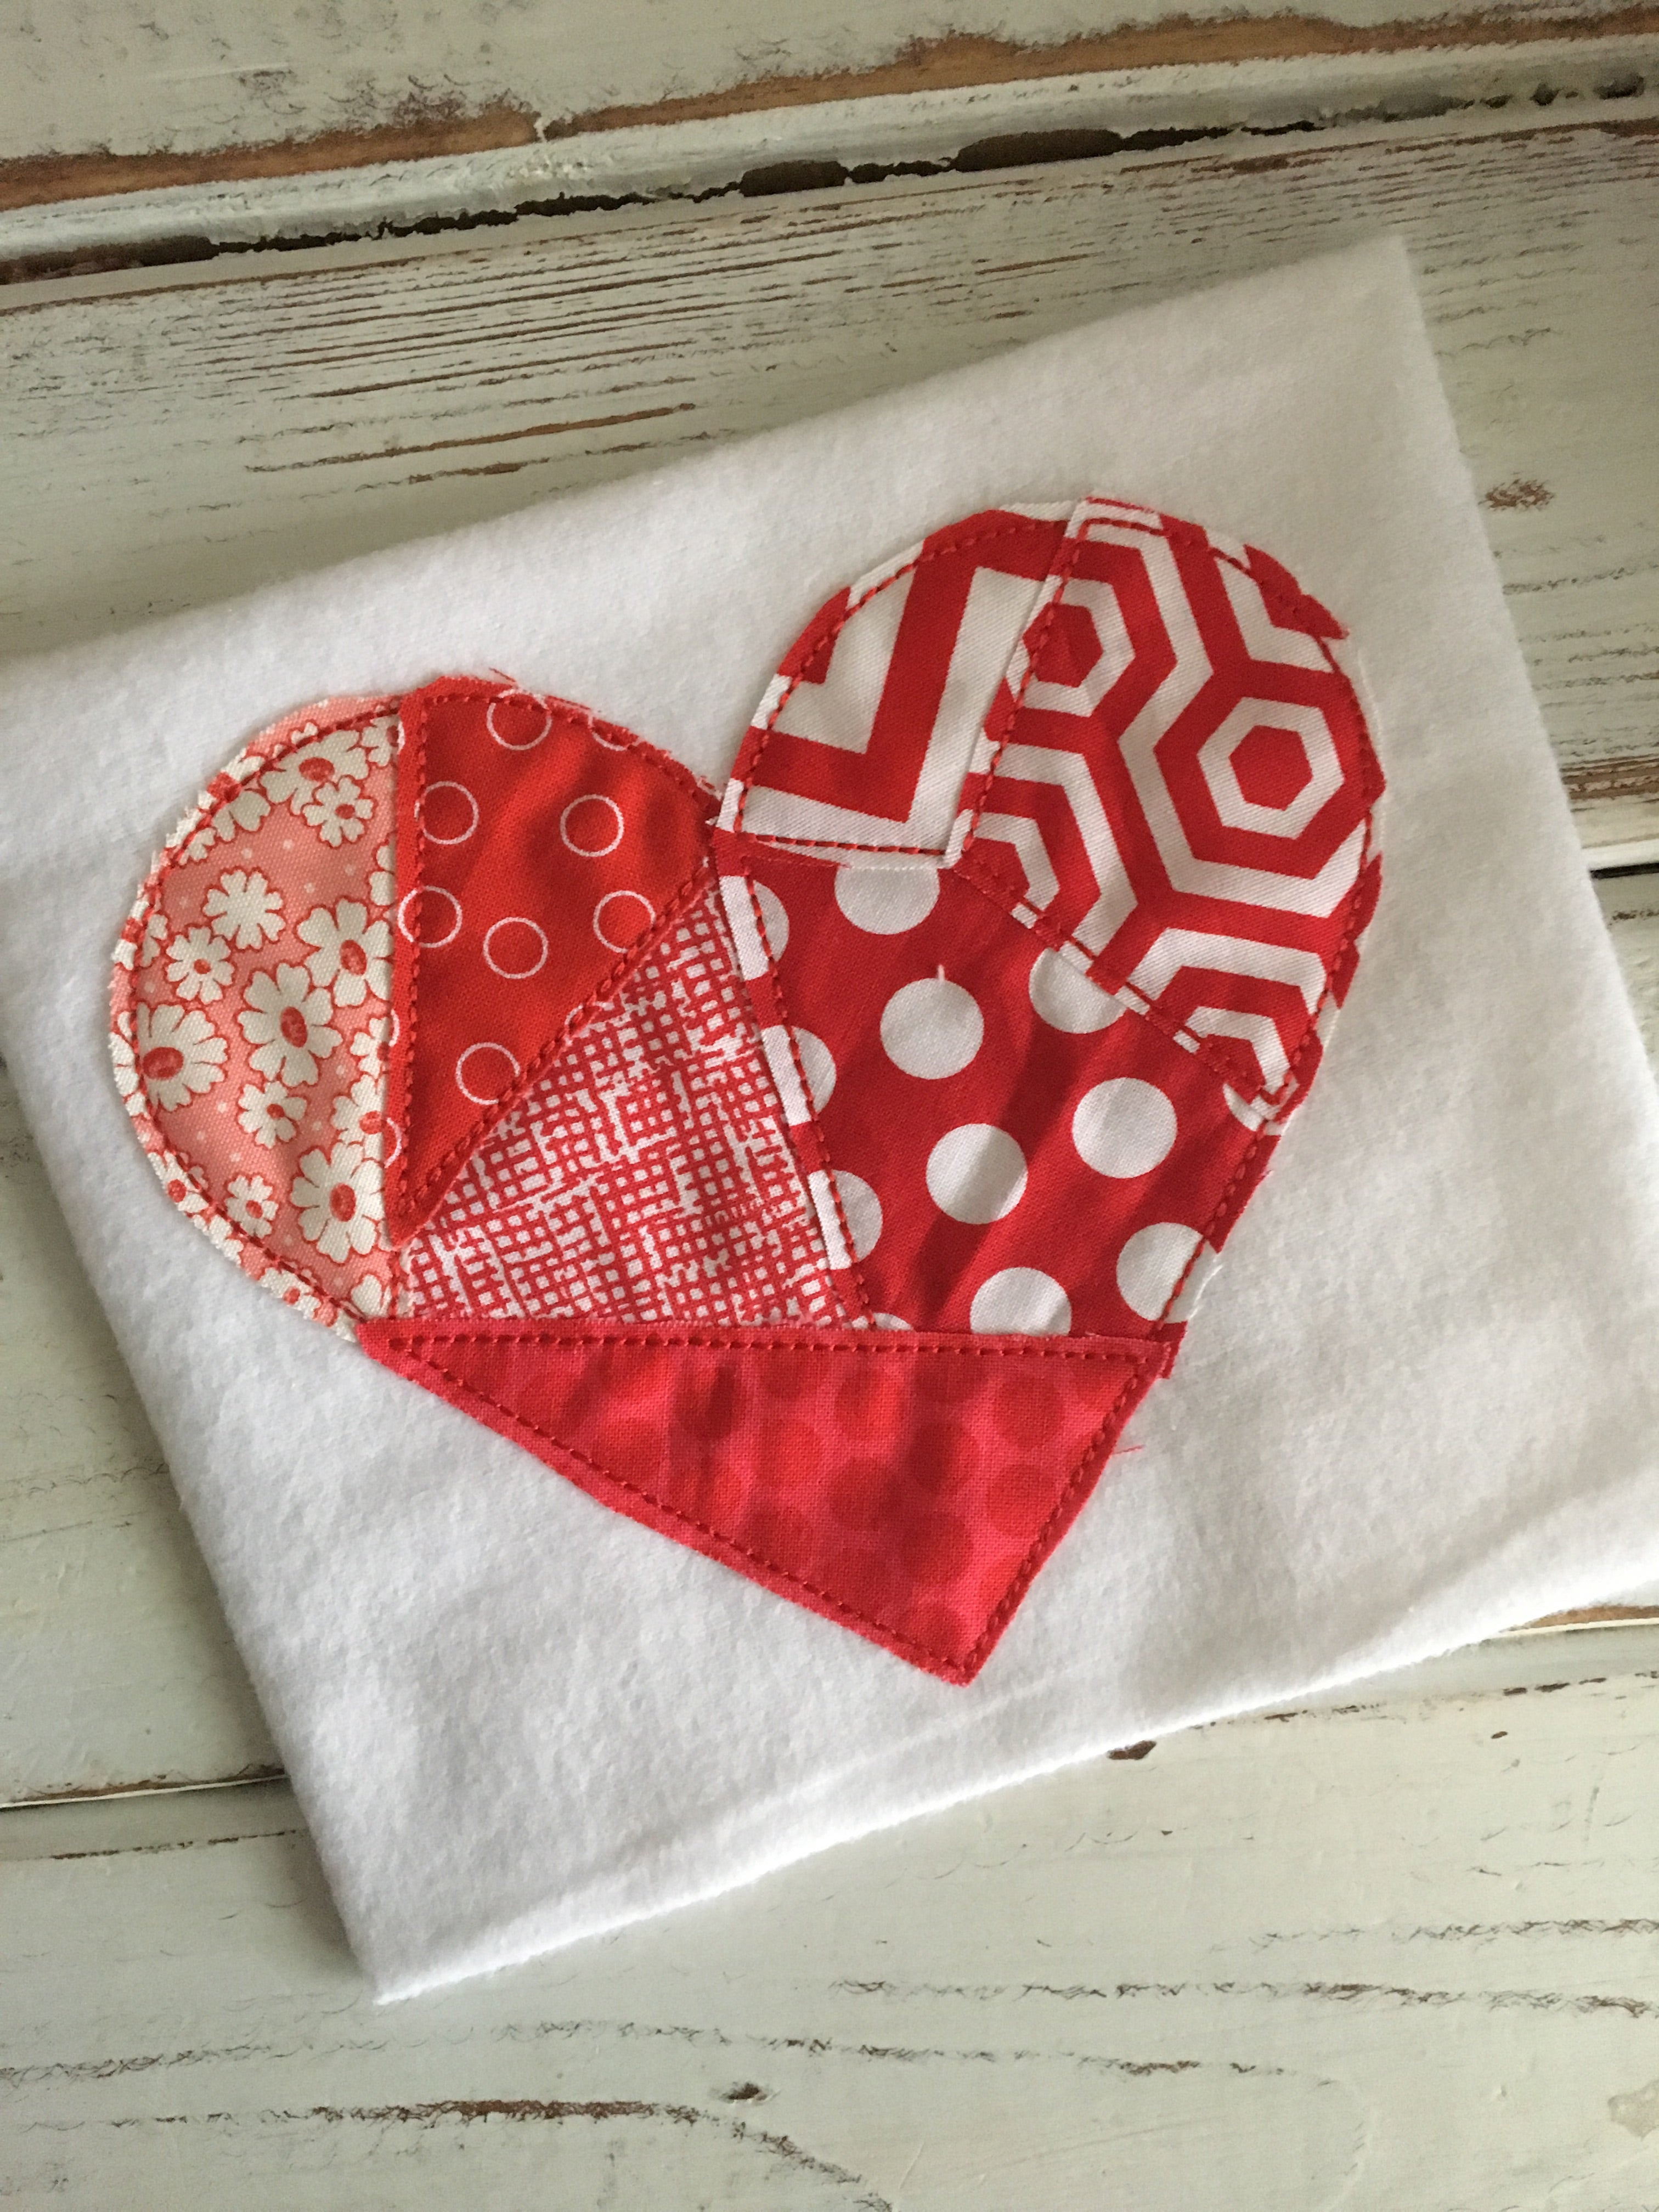 Pieced Heart Applique Design - Hug A Bug Applique Designs